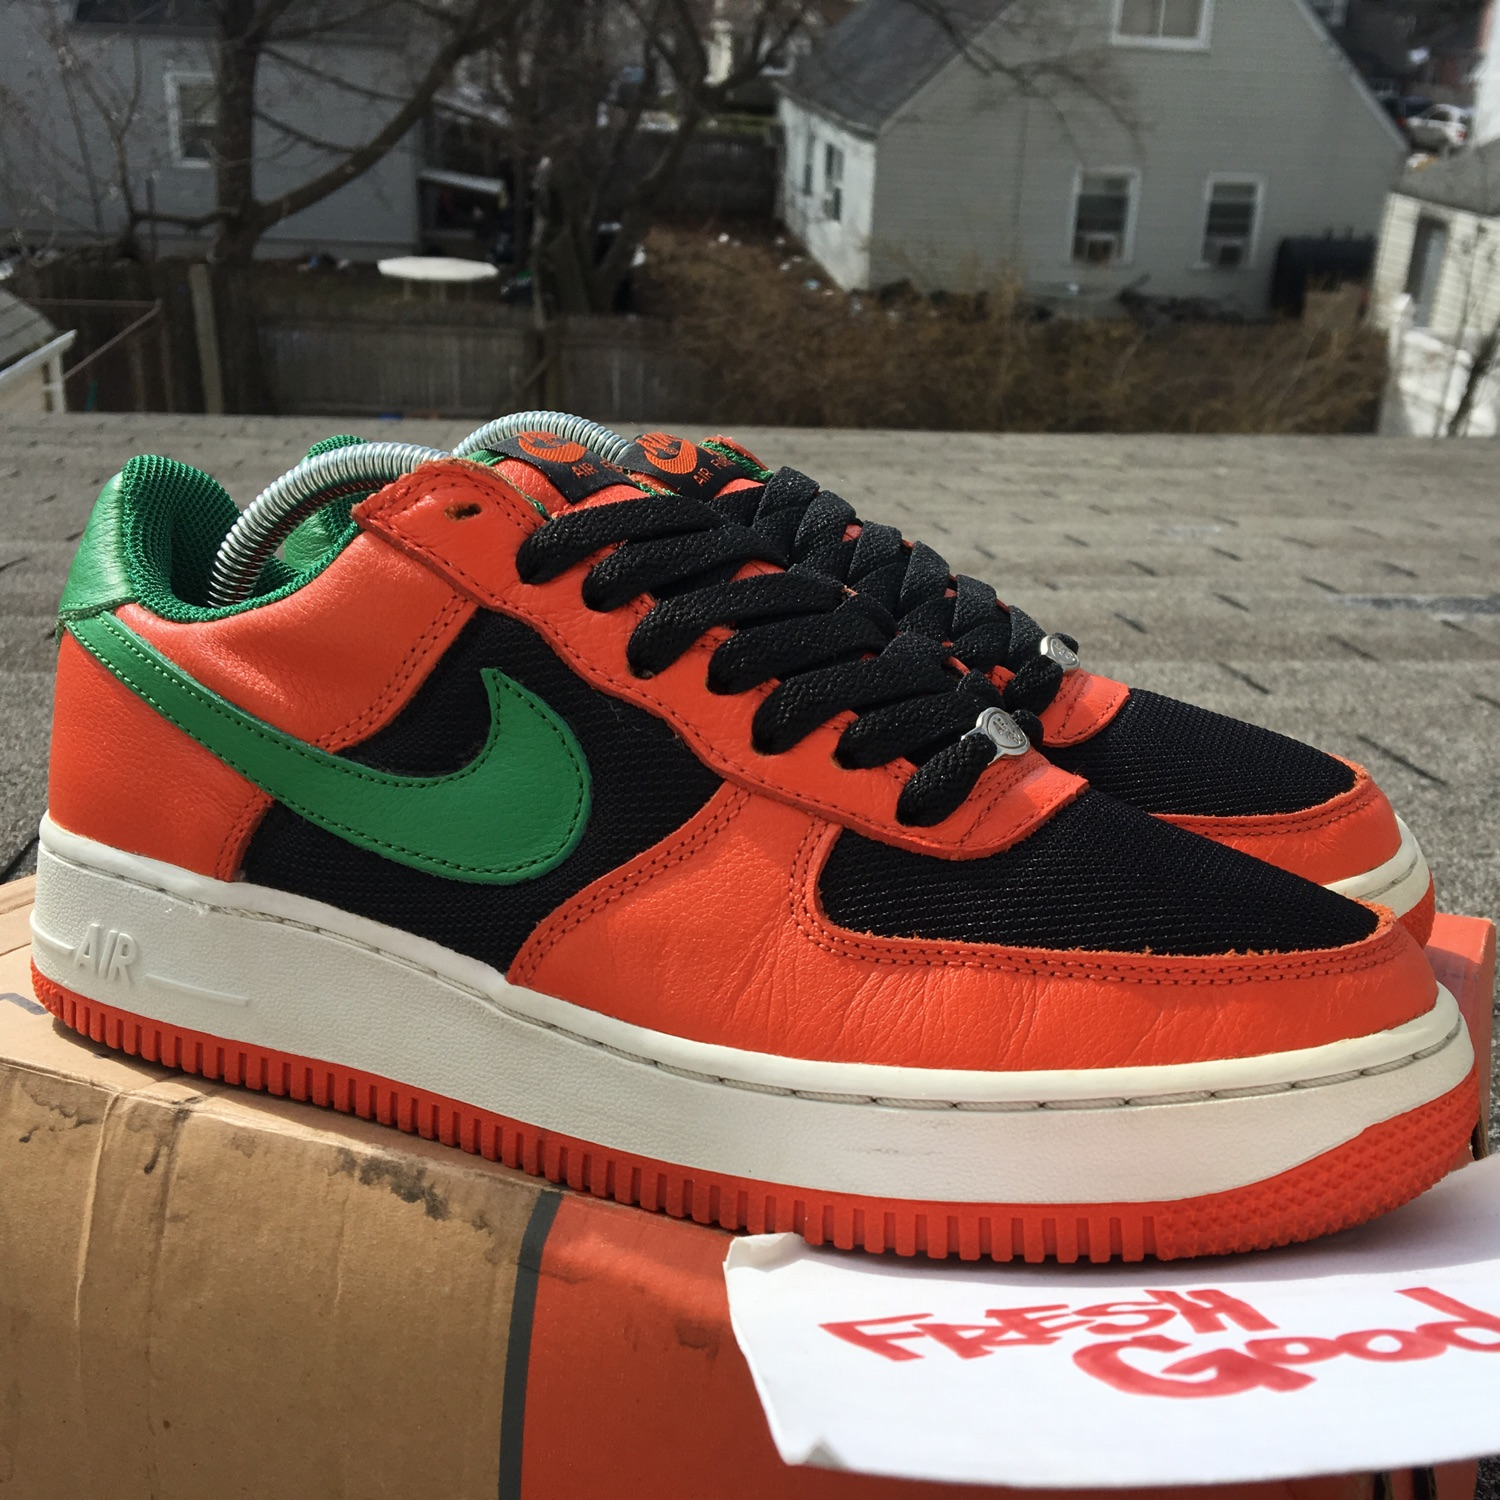 5f0e494d8d49 2003 Nike Air Force 1 Carnival 307334 831 Vnds 8.5